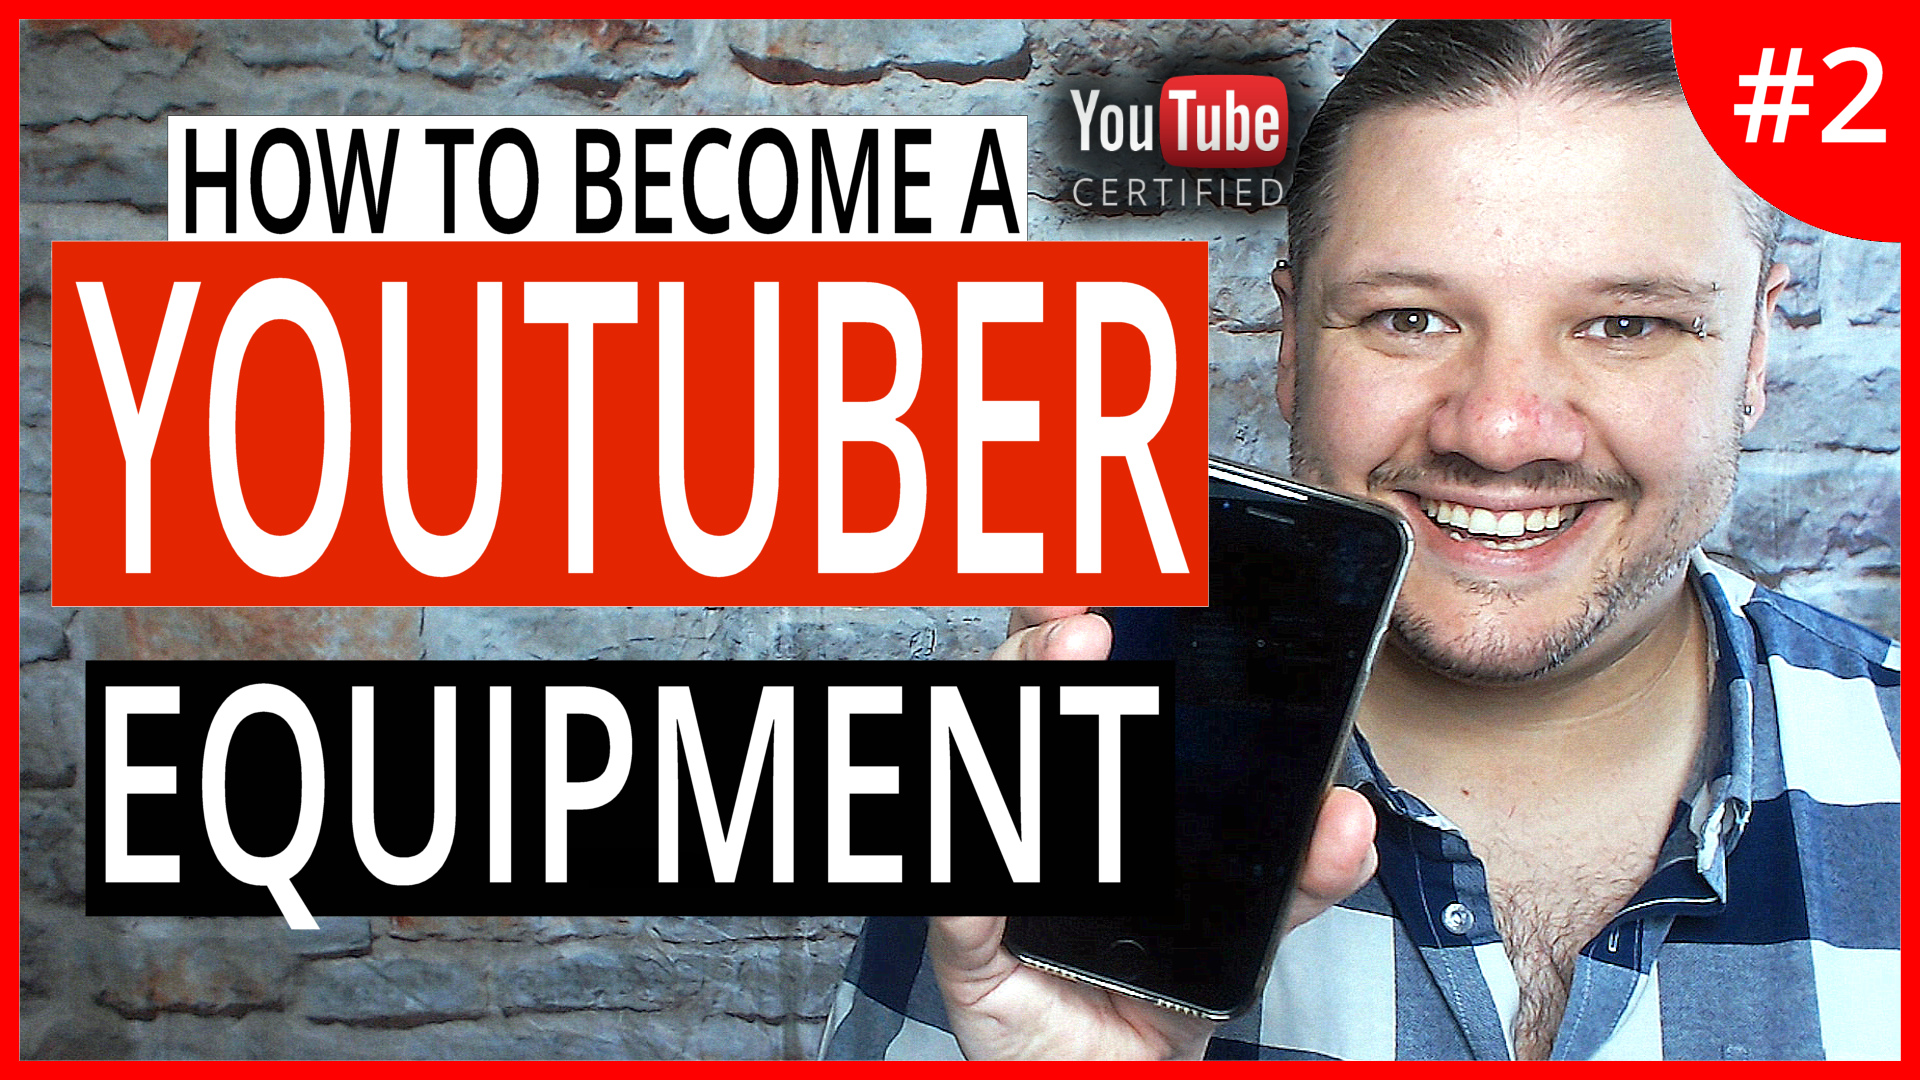 alan spicer,alanspicer,how to become a youtuber,youtube,become a youtuber,become a youtuber 2018,youtube equipment for beginners,youtube equipment for beginners gaming,youtube equipment setup for beginners,best camera and equipment for youtube beginners,youtube equipment,youtube equipment on a budget,youtube equipment setup,youtube equipment money,youtube equipment cheap,how to make a youtube channel,how to start a youtube channel,best equipment,youtube tips